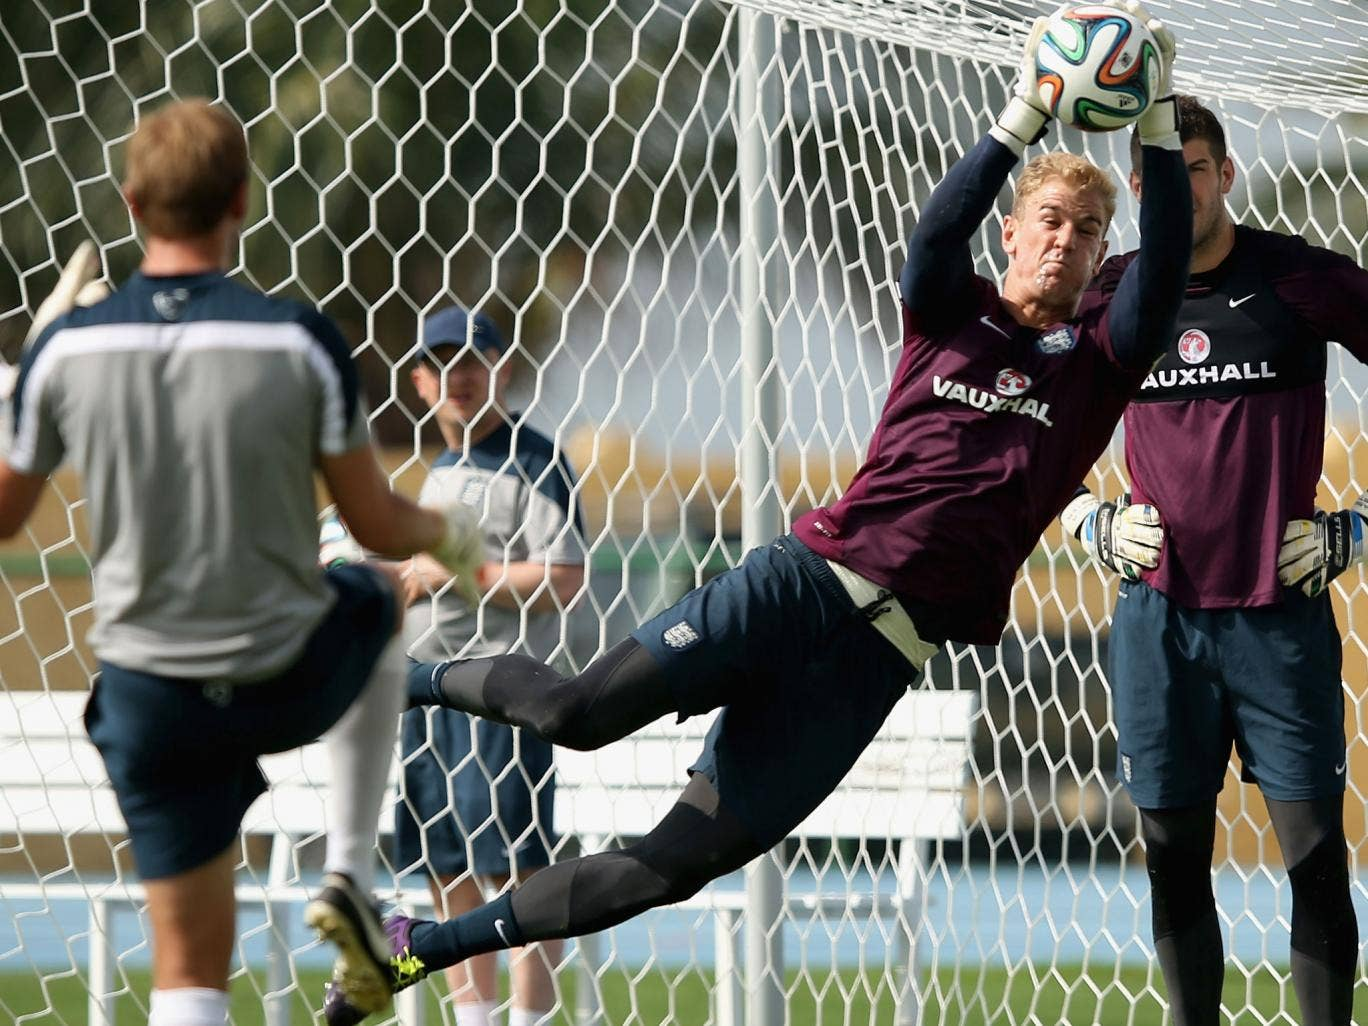 Joe Hart makes a save during England training in Rio this week